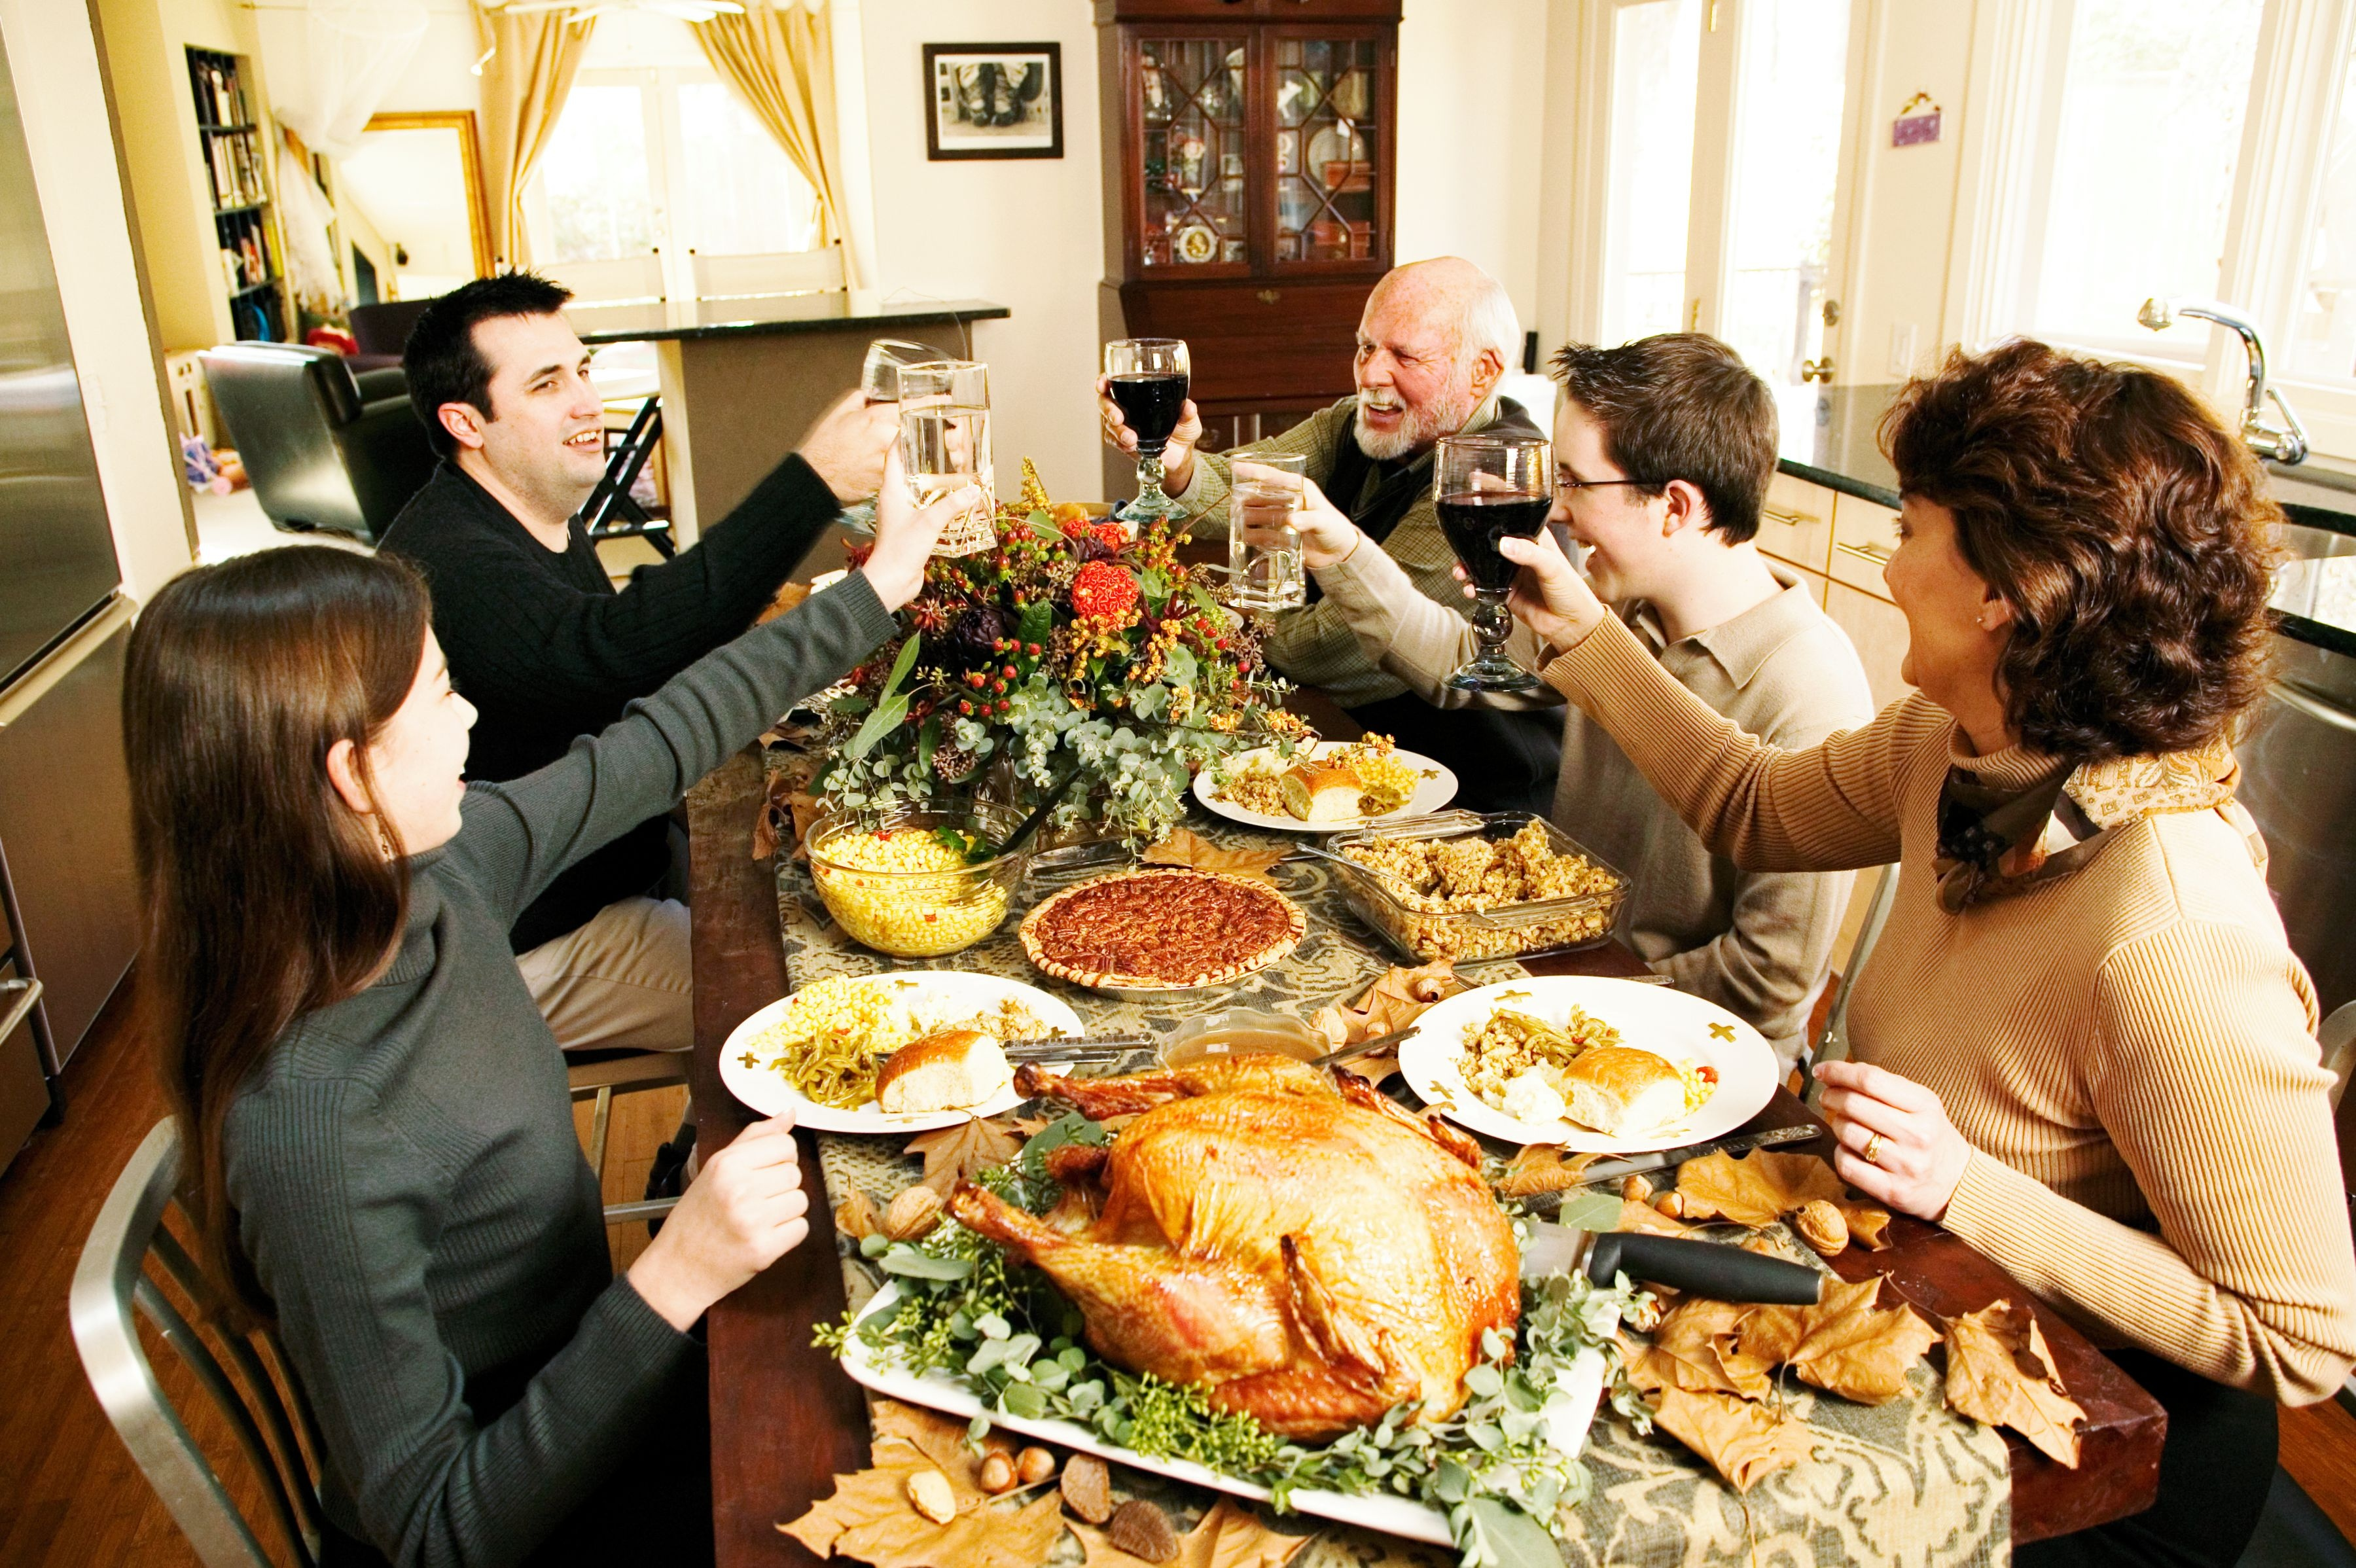 Thanksgiving - The feast of Fall, Family and Food